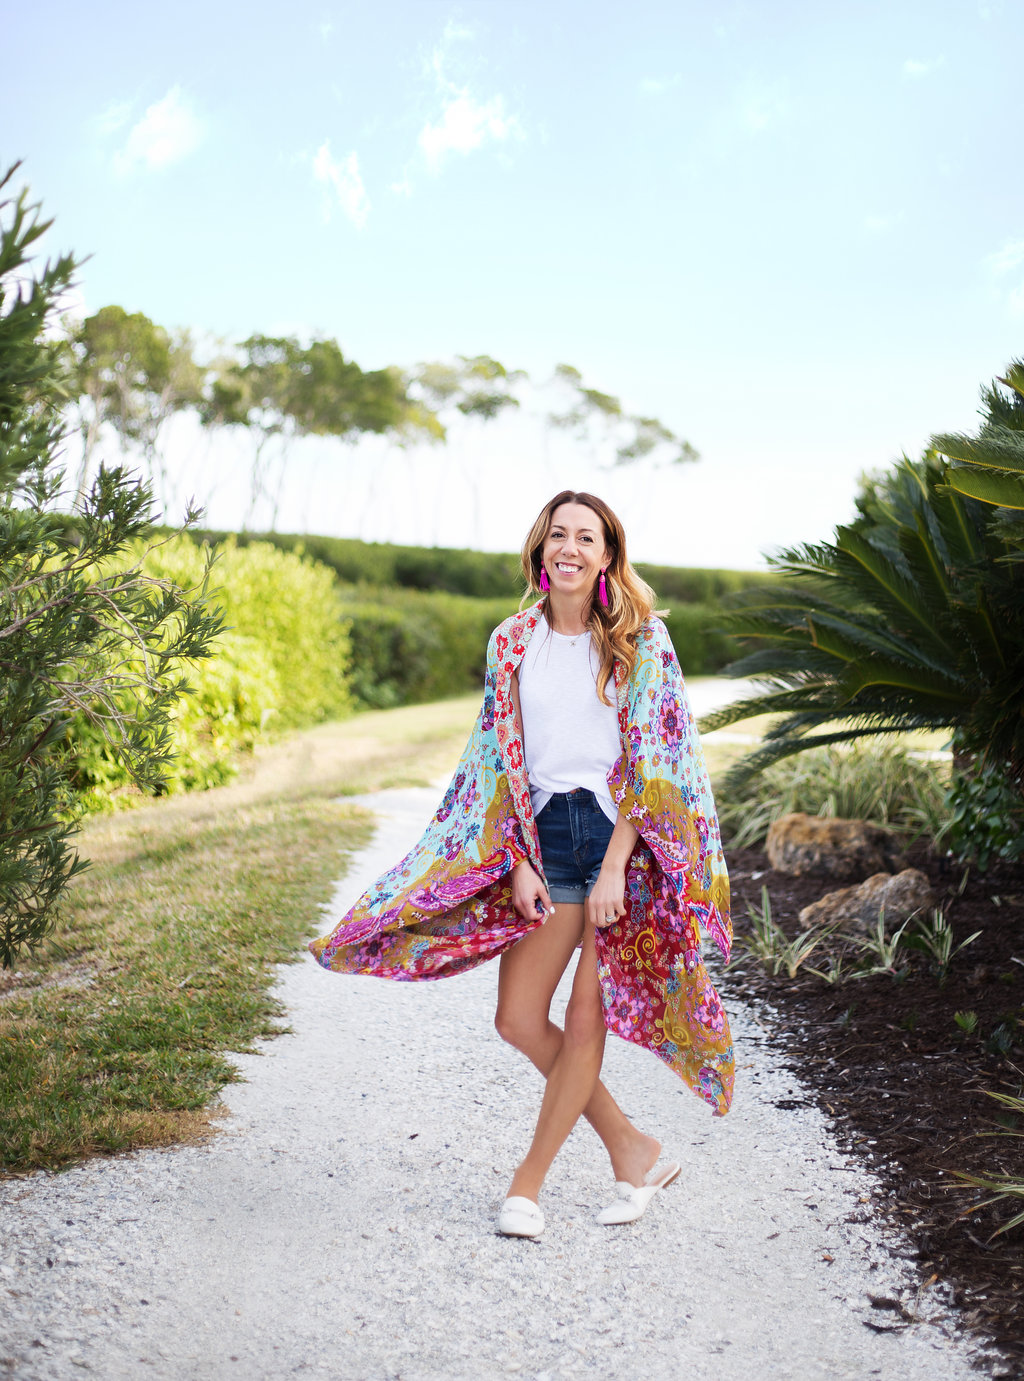 The Motherchic wearing free people kimono and madewell jean shorts